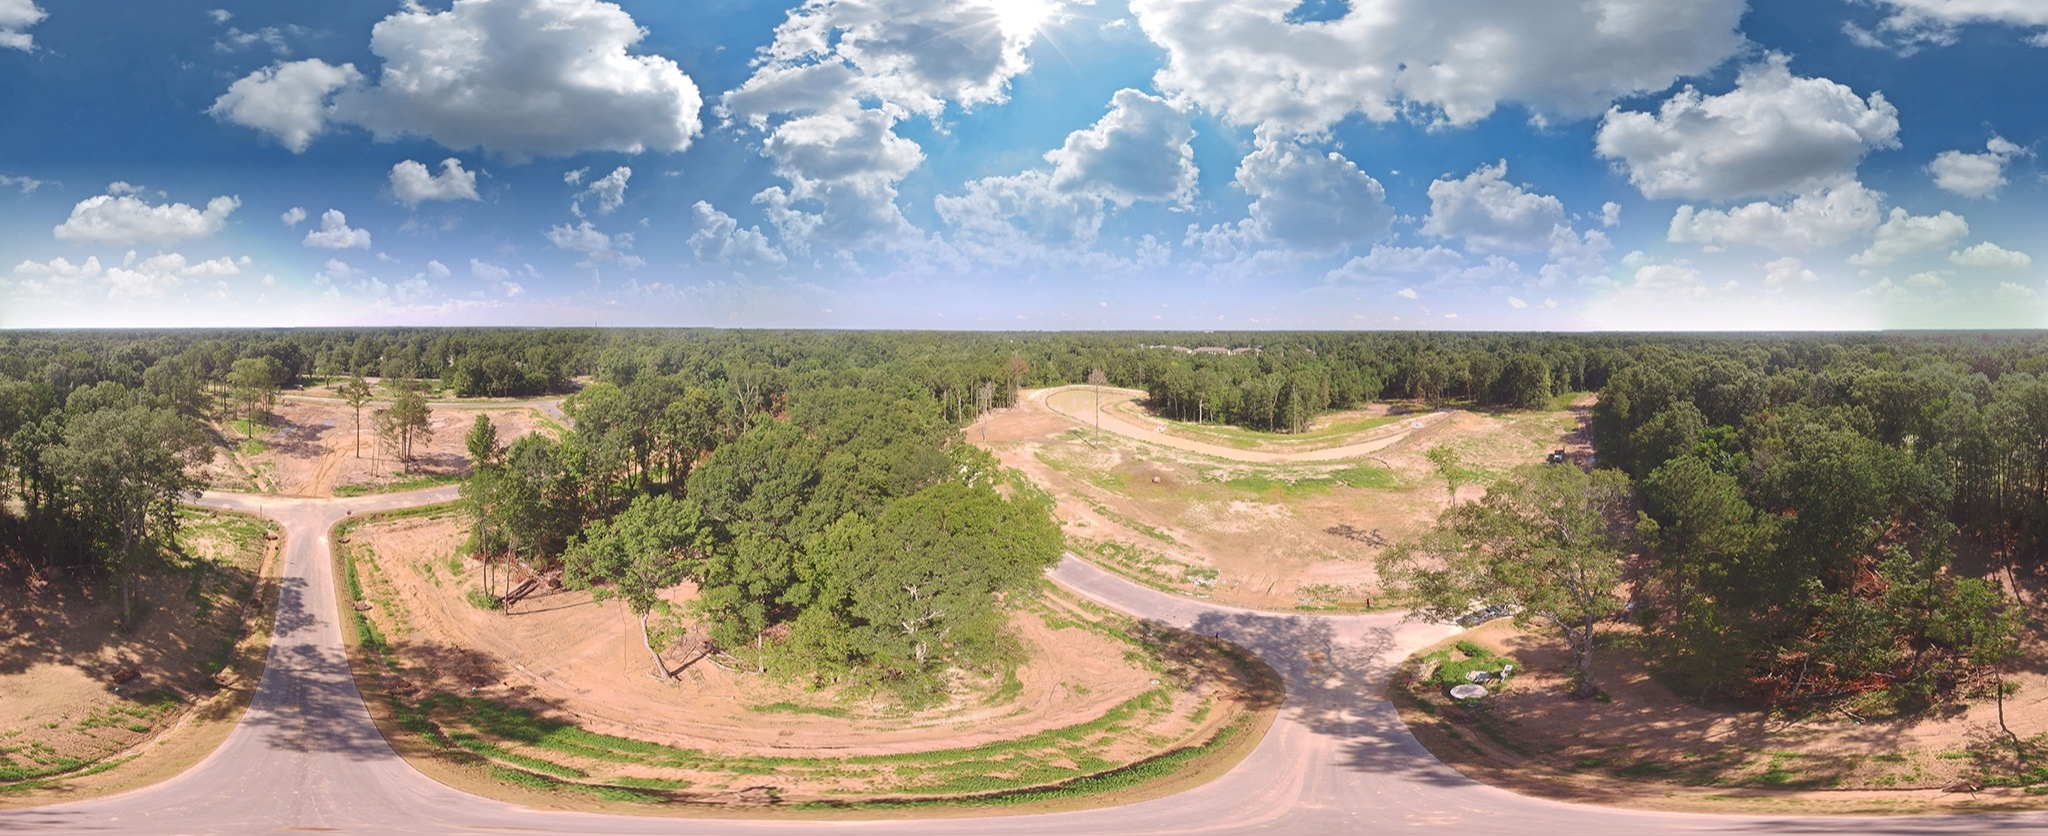 Top arial photo, background panorama, & above panorama taken by  Mark Fink  - masterMWF@gmail.com